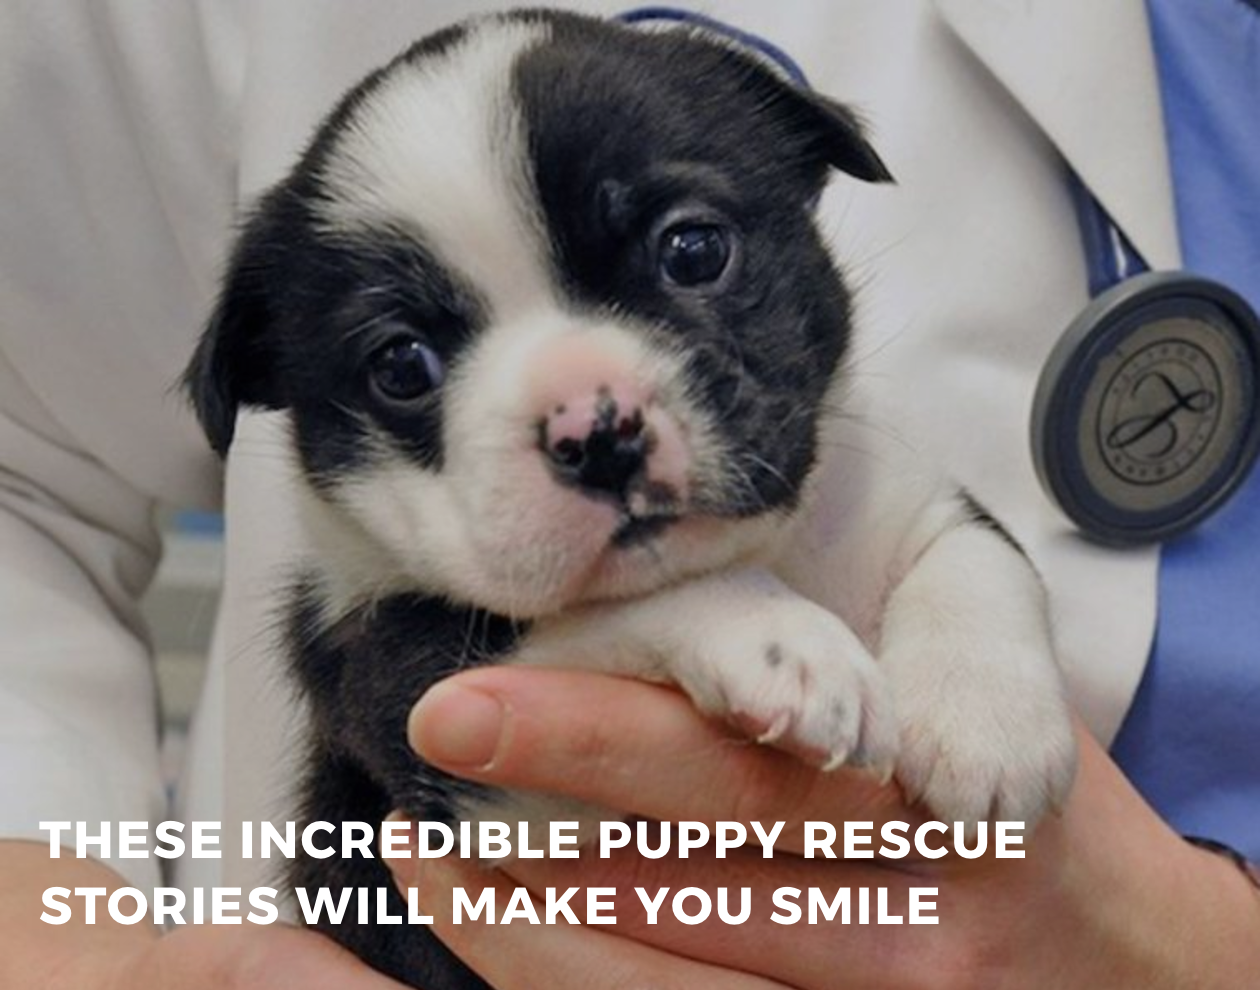 These Incredible Puppy Rescue Stories Will Make You Smile